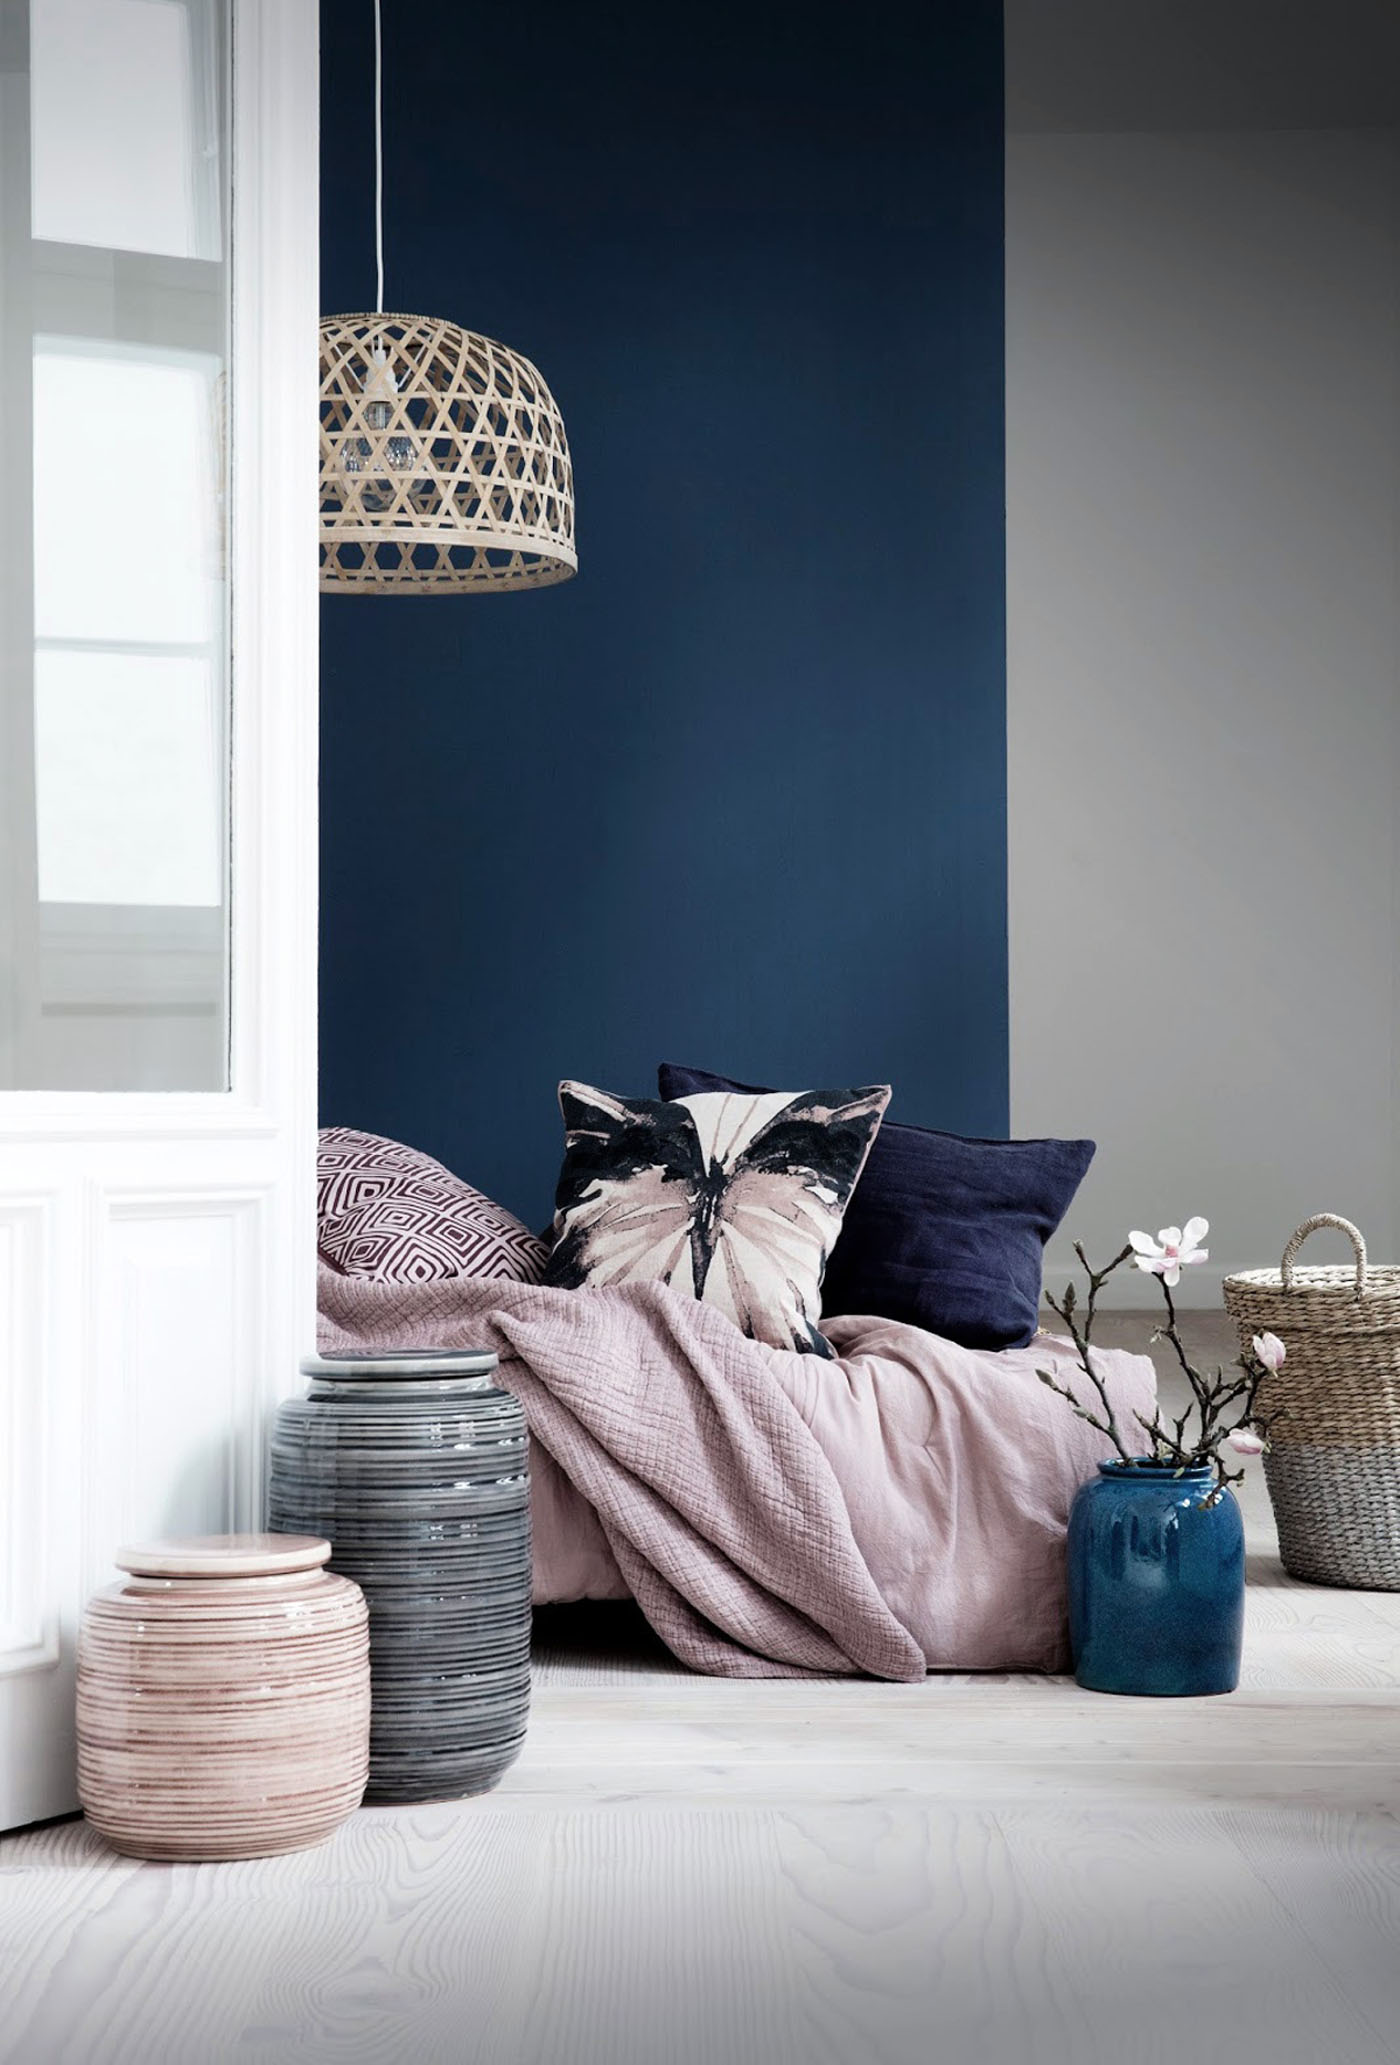 Spring trends with rugs direct by popular interior design blog e interiors